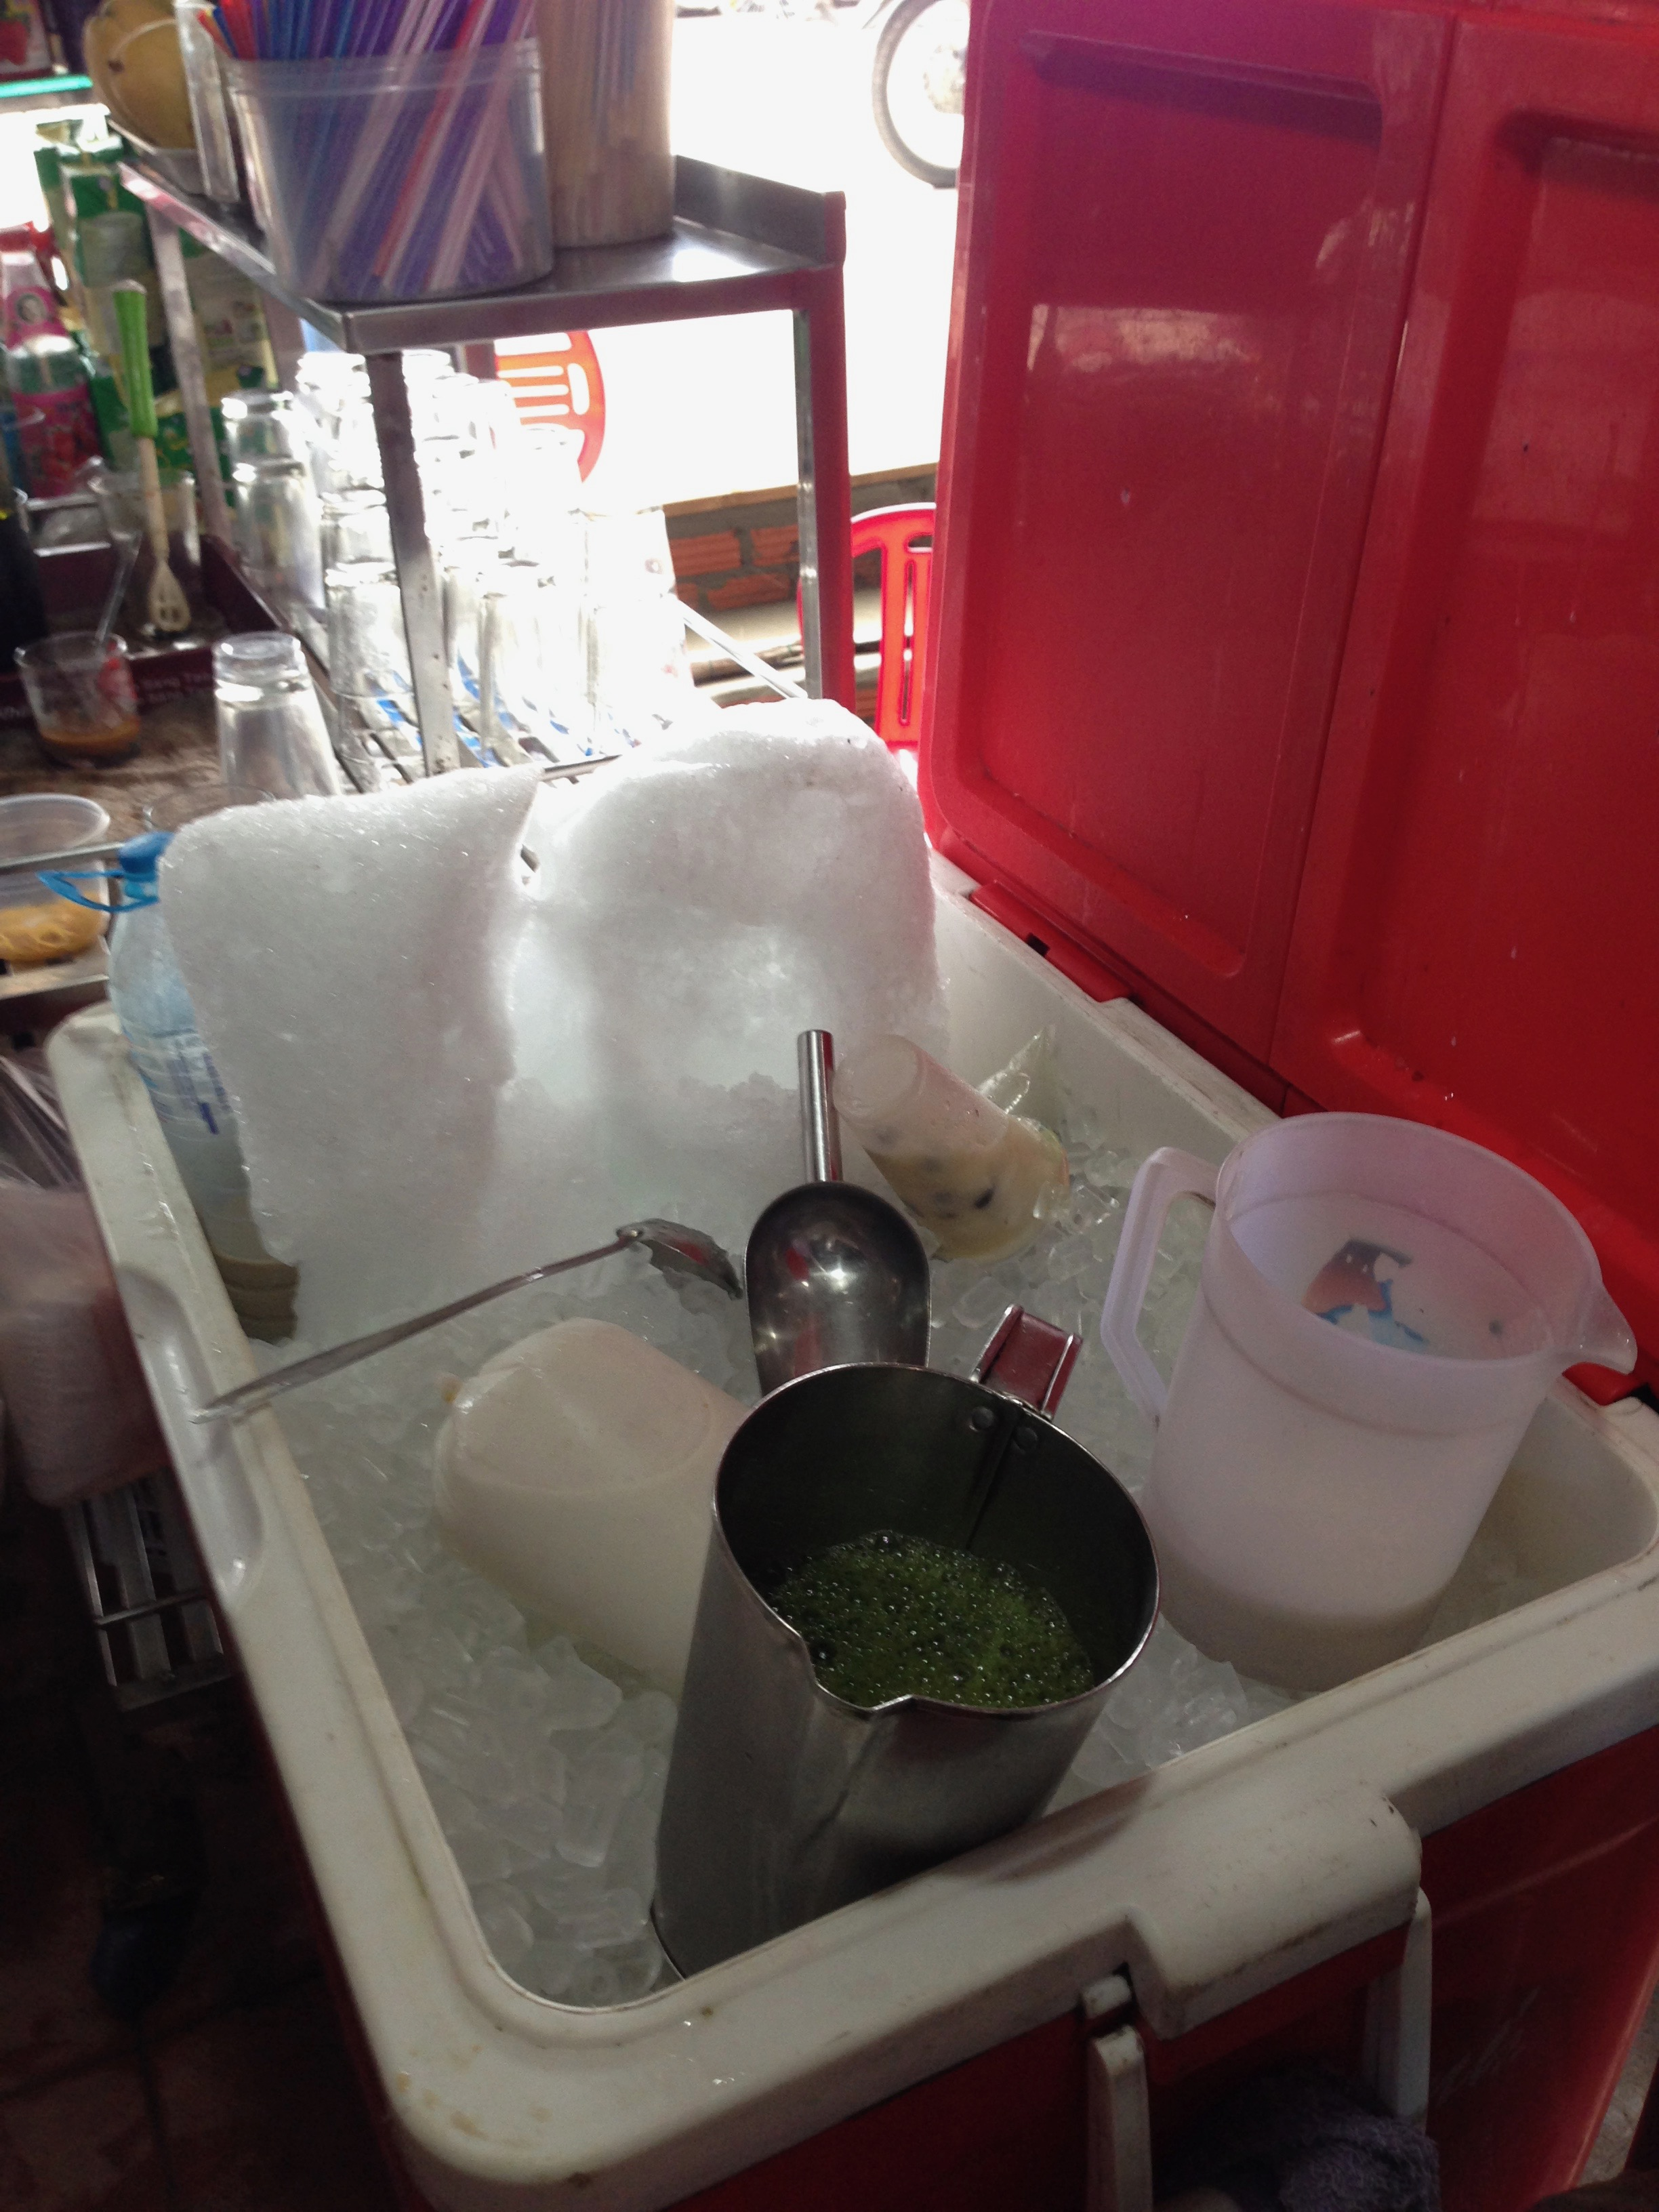 The ice is perfectly safe to consume in Vietnam. This is a relief, because ice in drinks makes them so much more enjoyable don't you think? Two types of ice are used. The finely crushed ice is served on top of the sinh to dam. A fruit salad drink with sweetened condensed milk and piled high with a dome of crushed ice. The coarser ice used to be hand bashed through a hessian bag to crack it from a large block with a wooded mallet by Tams father. Now it arrives already in pieces.